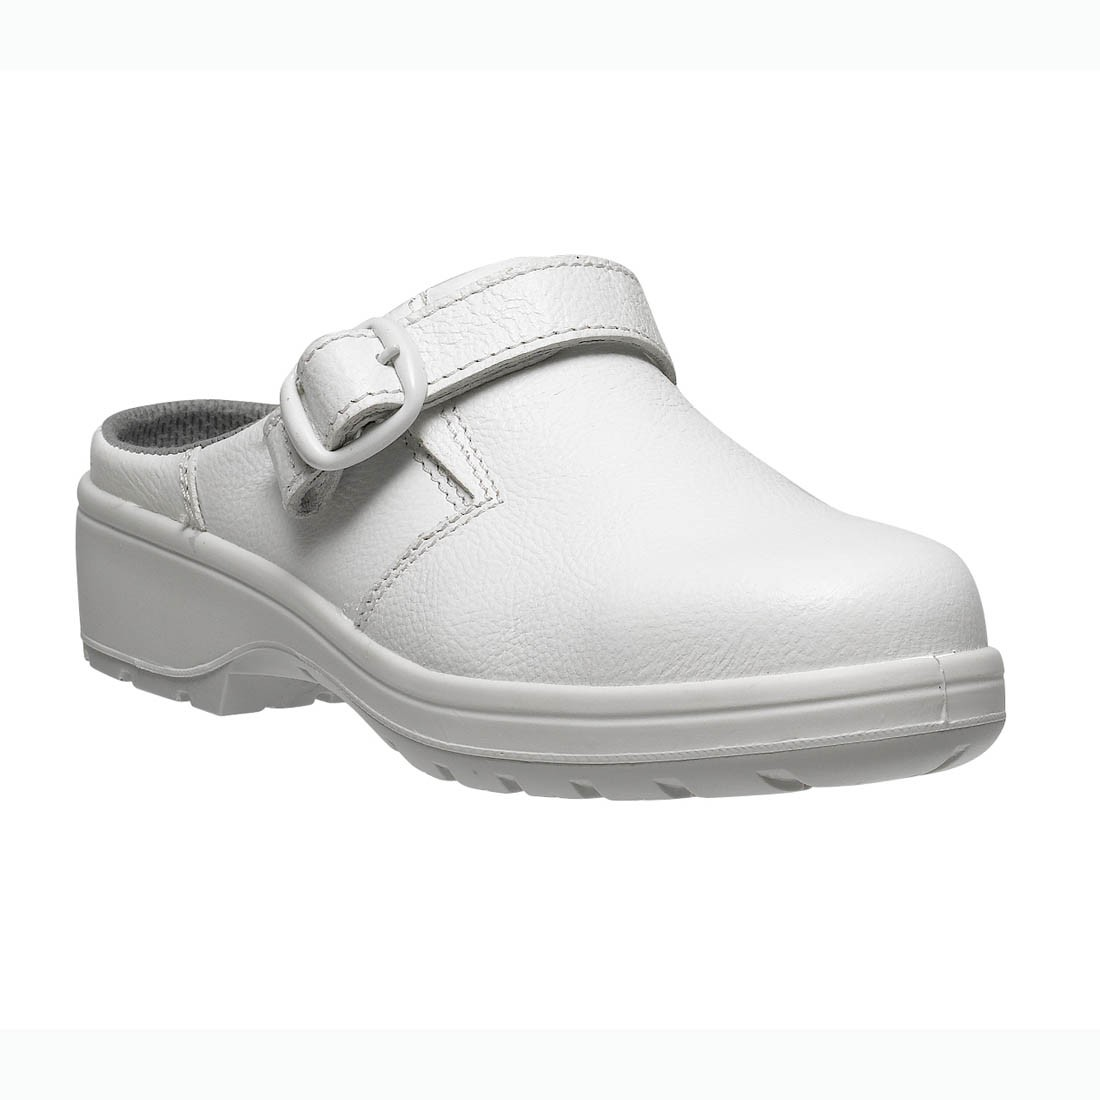 Parade Daisie White Microfiber Clog Style Slip On Ladies Safety Shoes